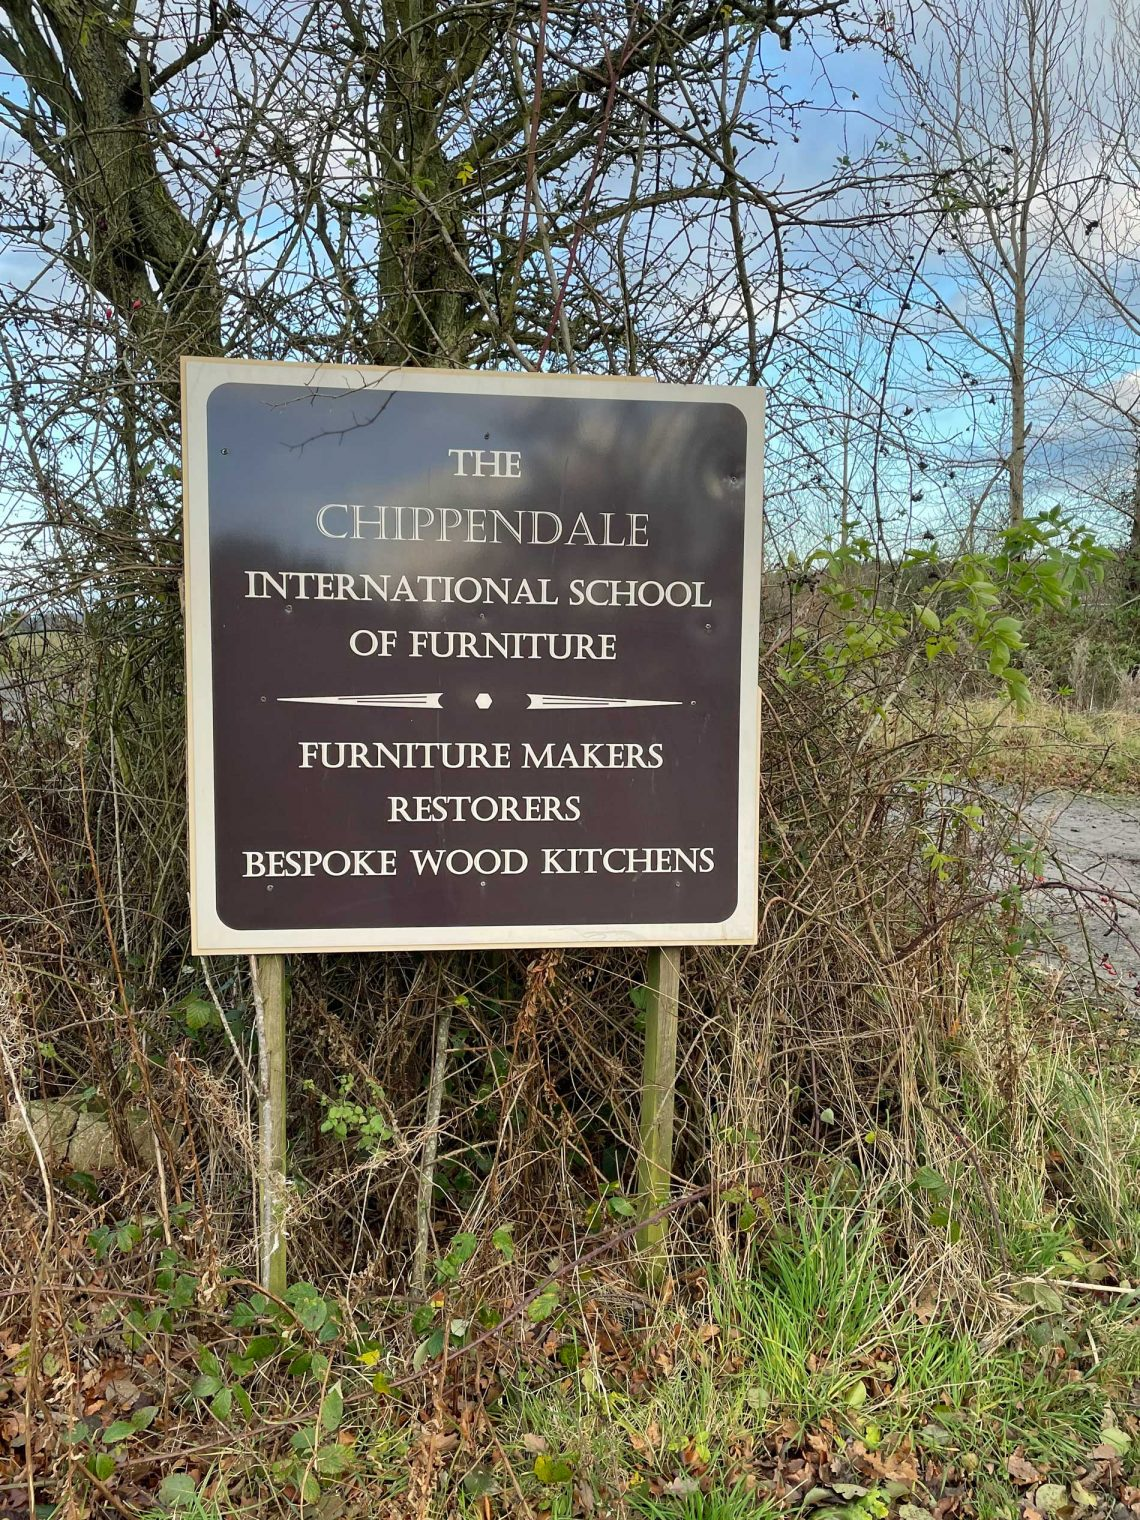 Chippendale International School of Furniture entrance sign